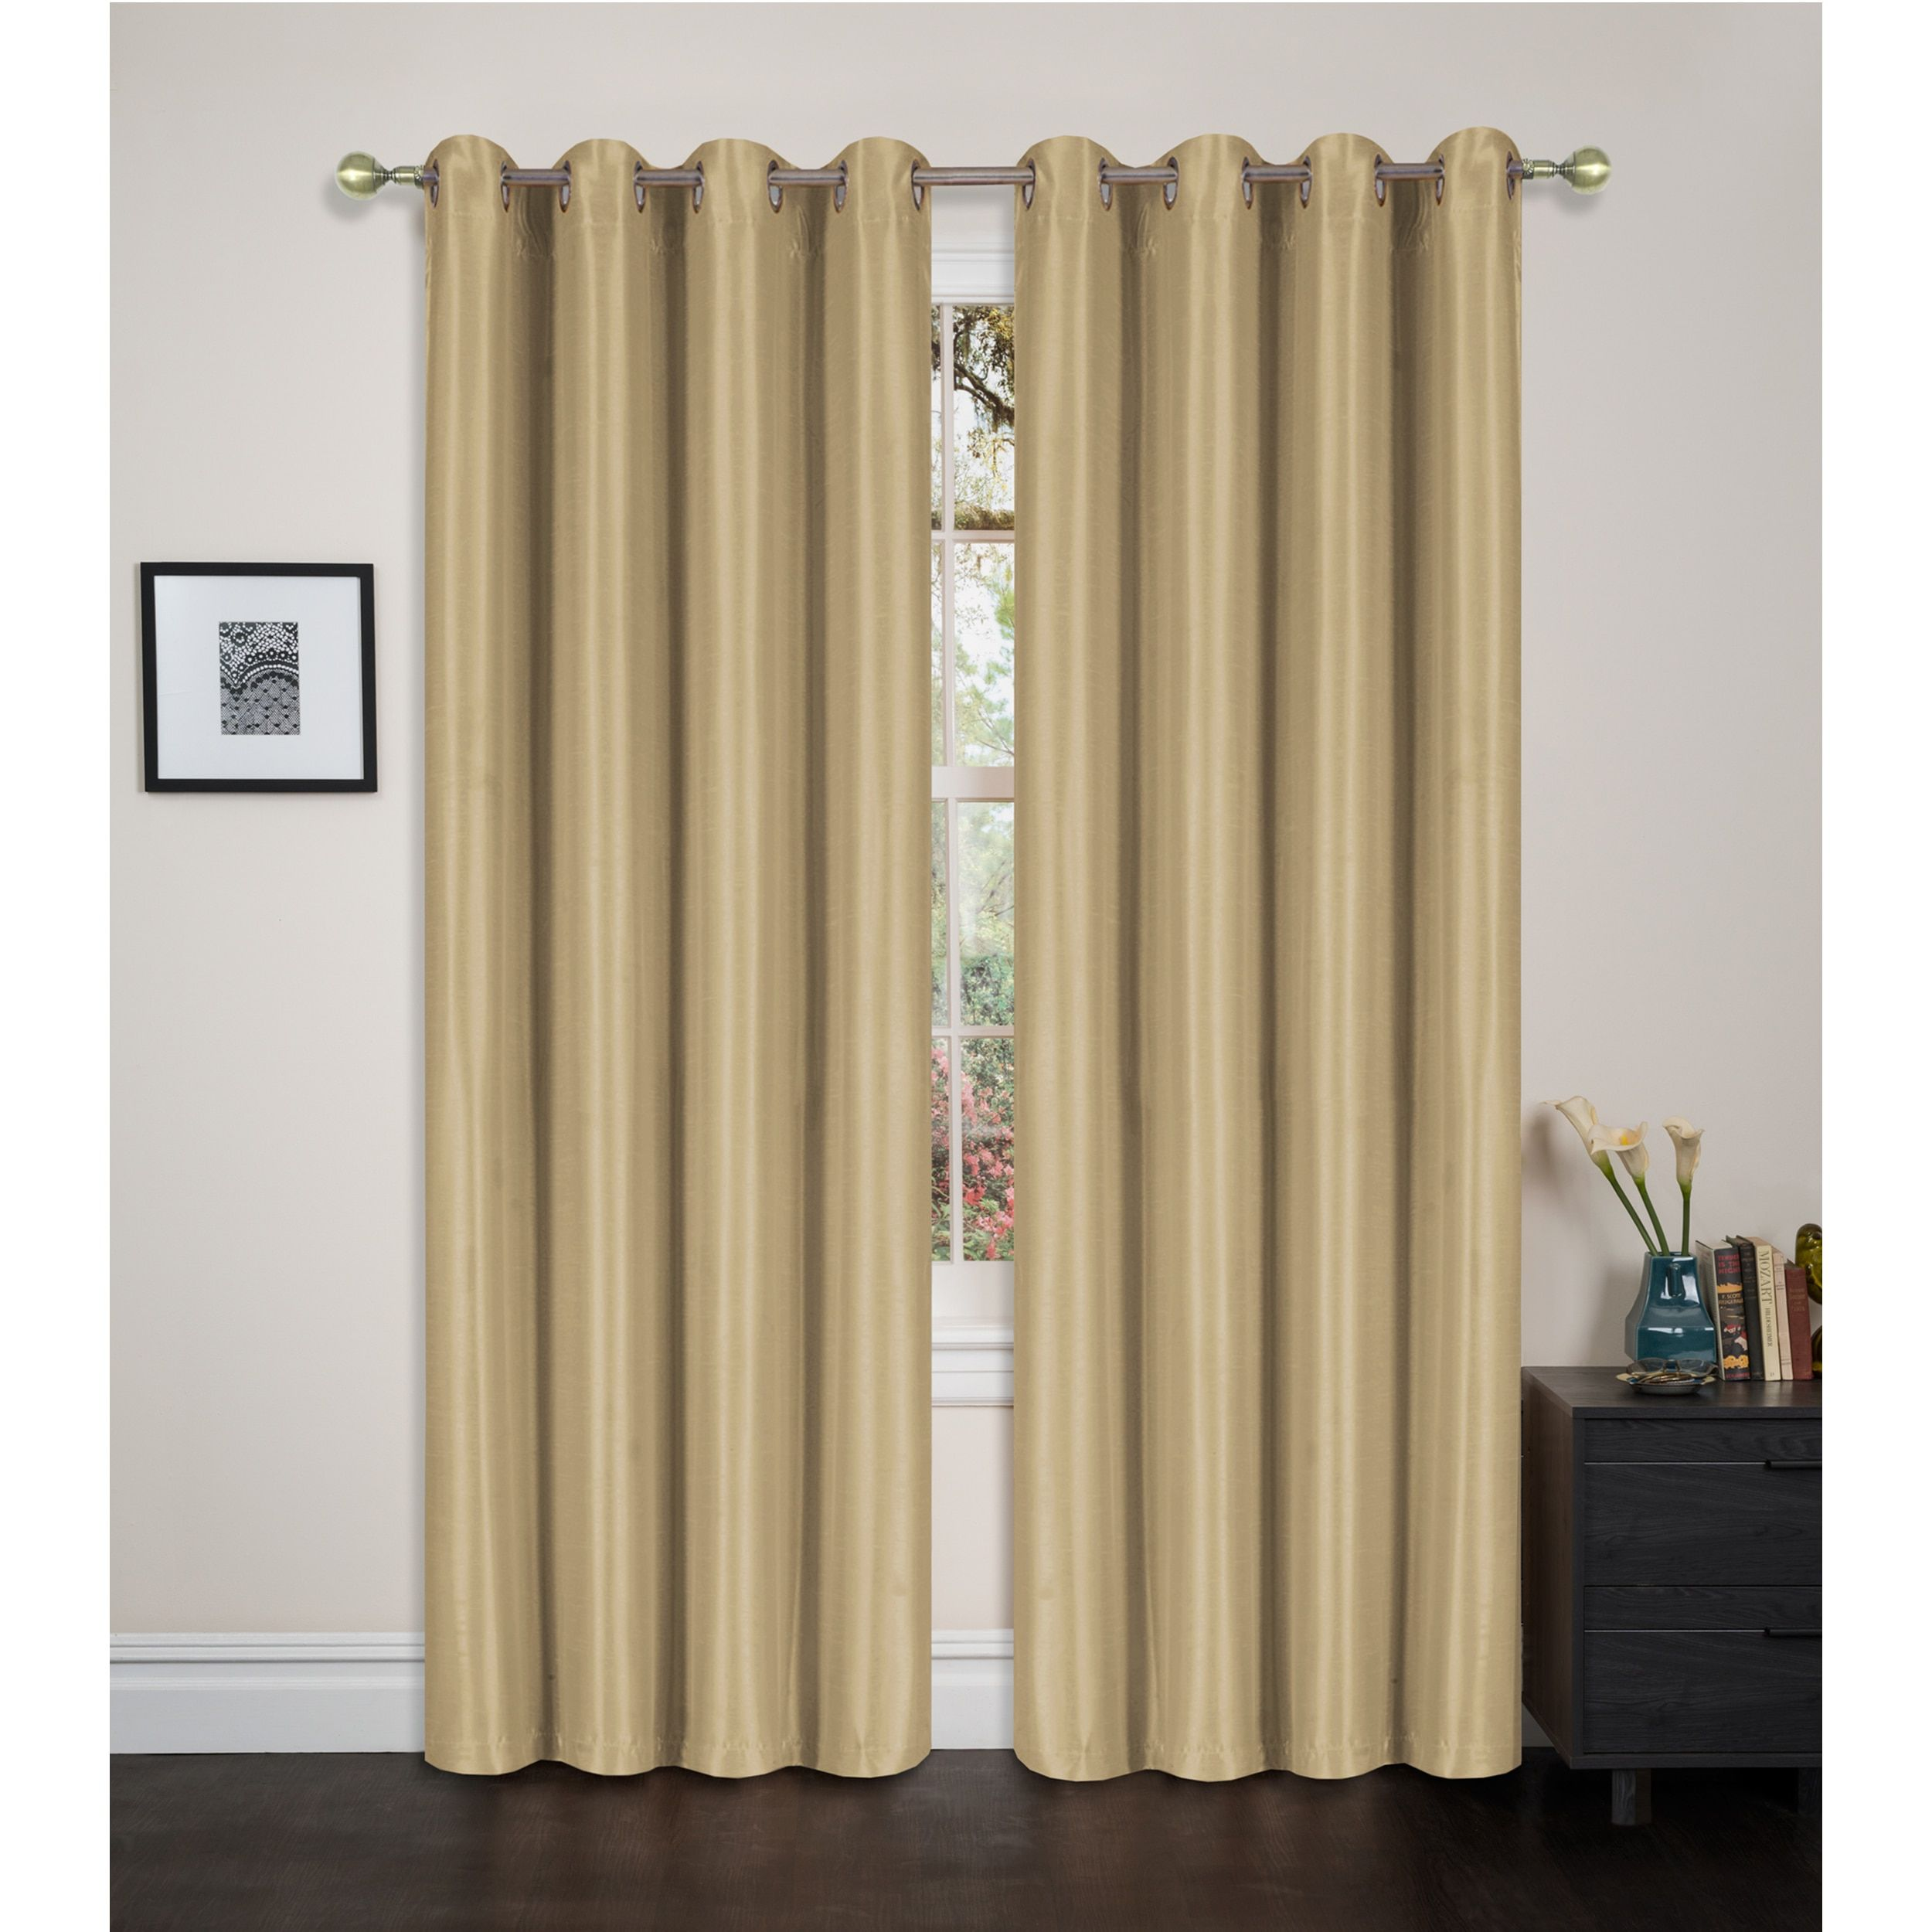 lushdecor single products light window curtain com decor aqua lush nerina